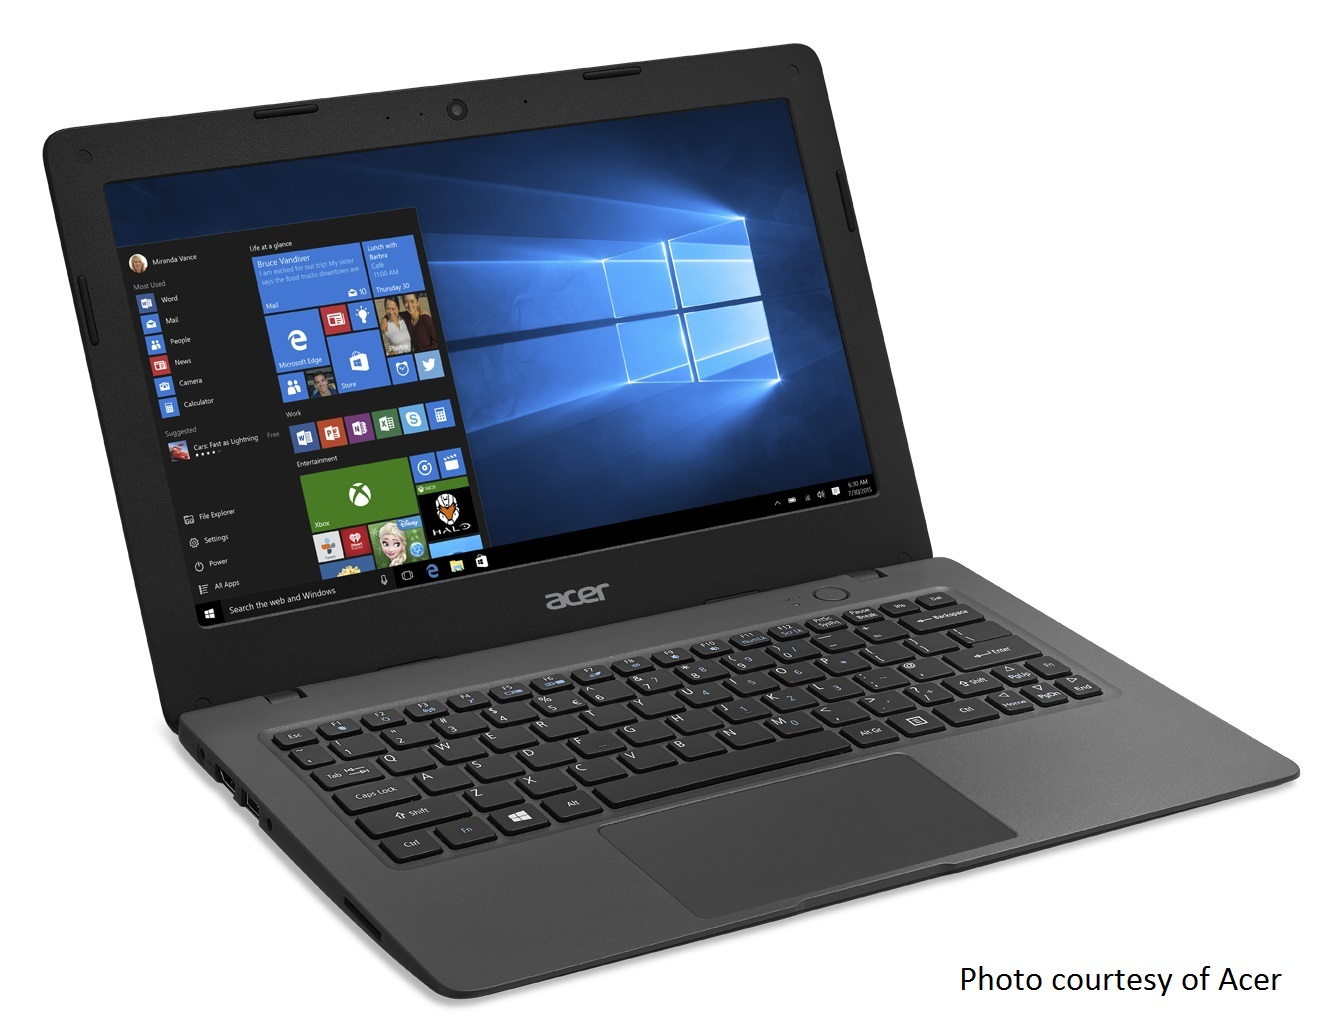 Acer unveils Aspire One Cloudbook powered by Windows 10